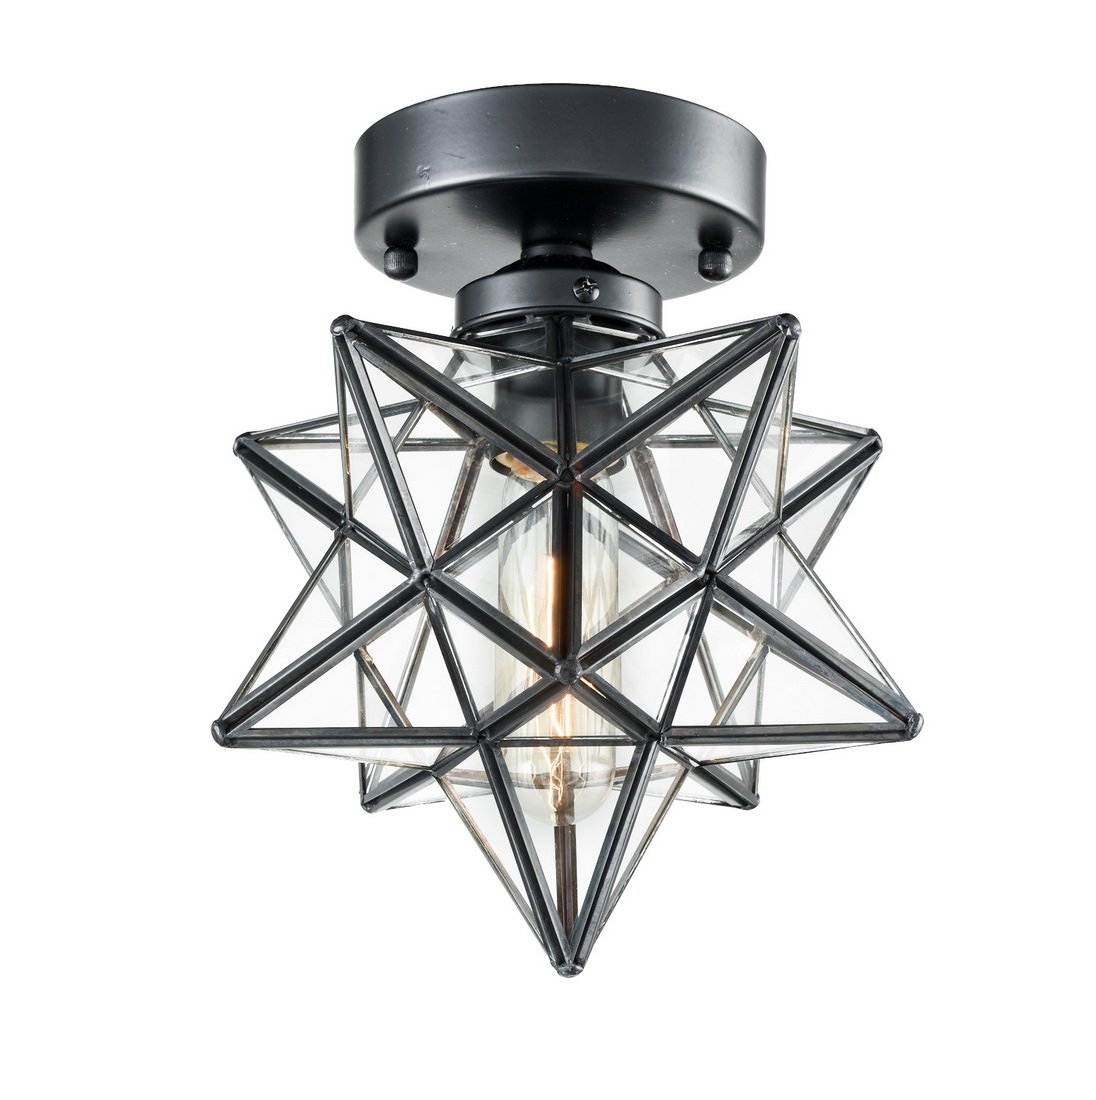 AXILAND Industrial Moravian Star Ceiling Light with 8-inch Glass Shade, 1 Light